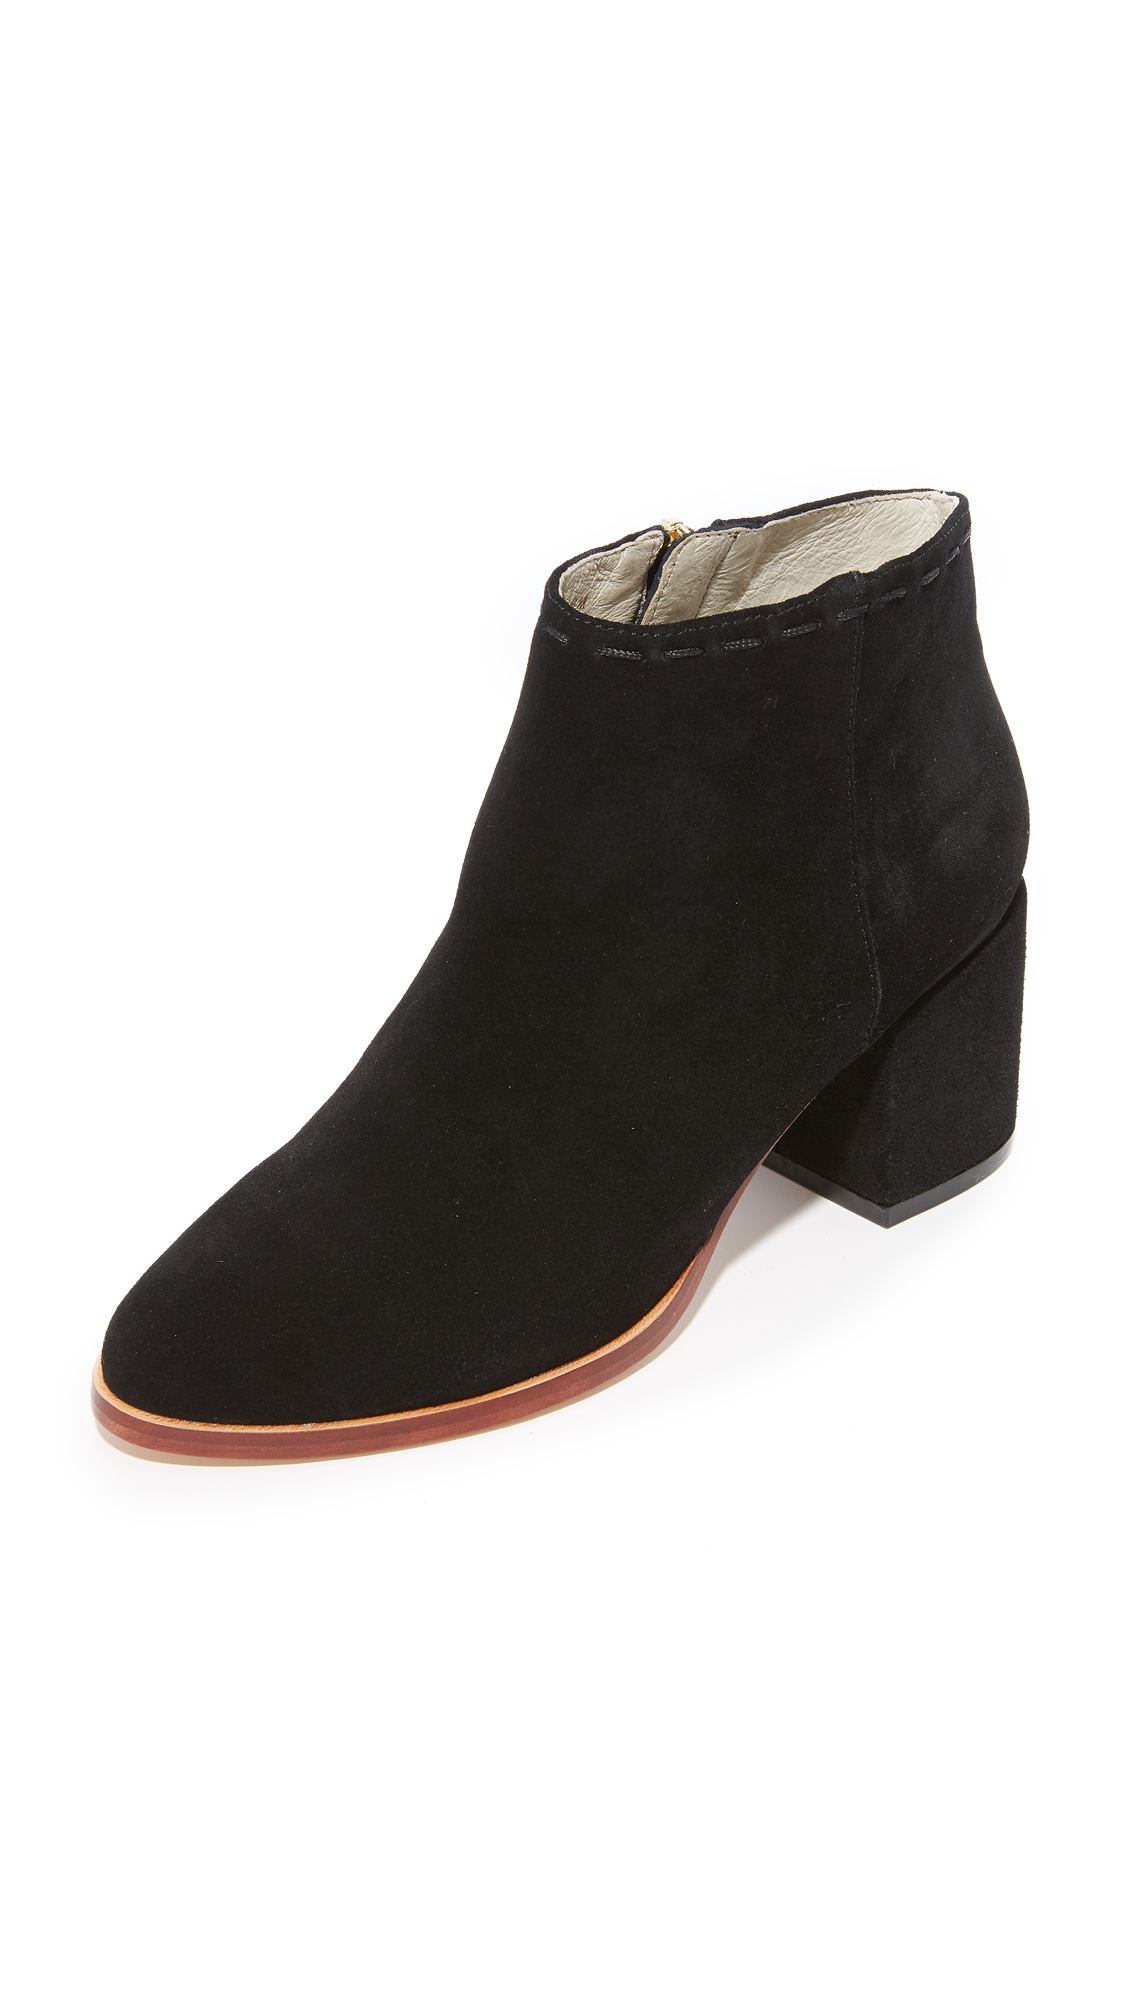 Matt Bernson Lido Ankle Booties - Black